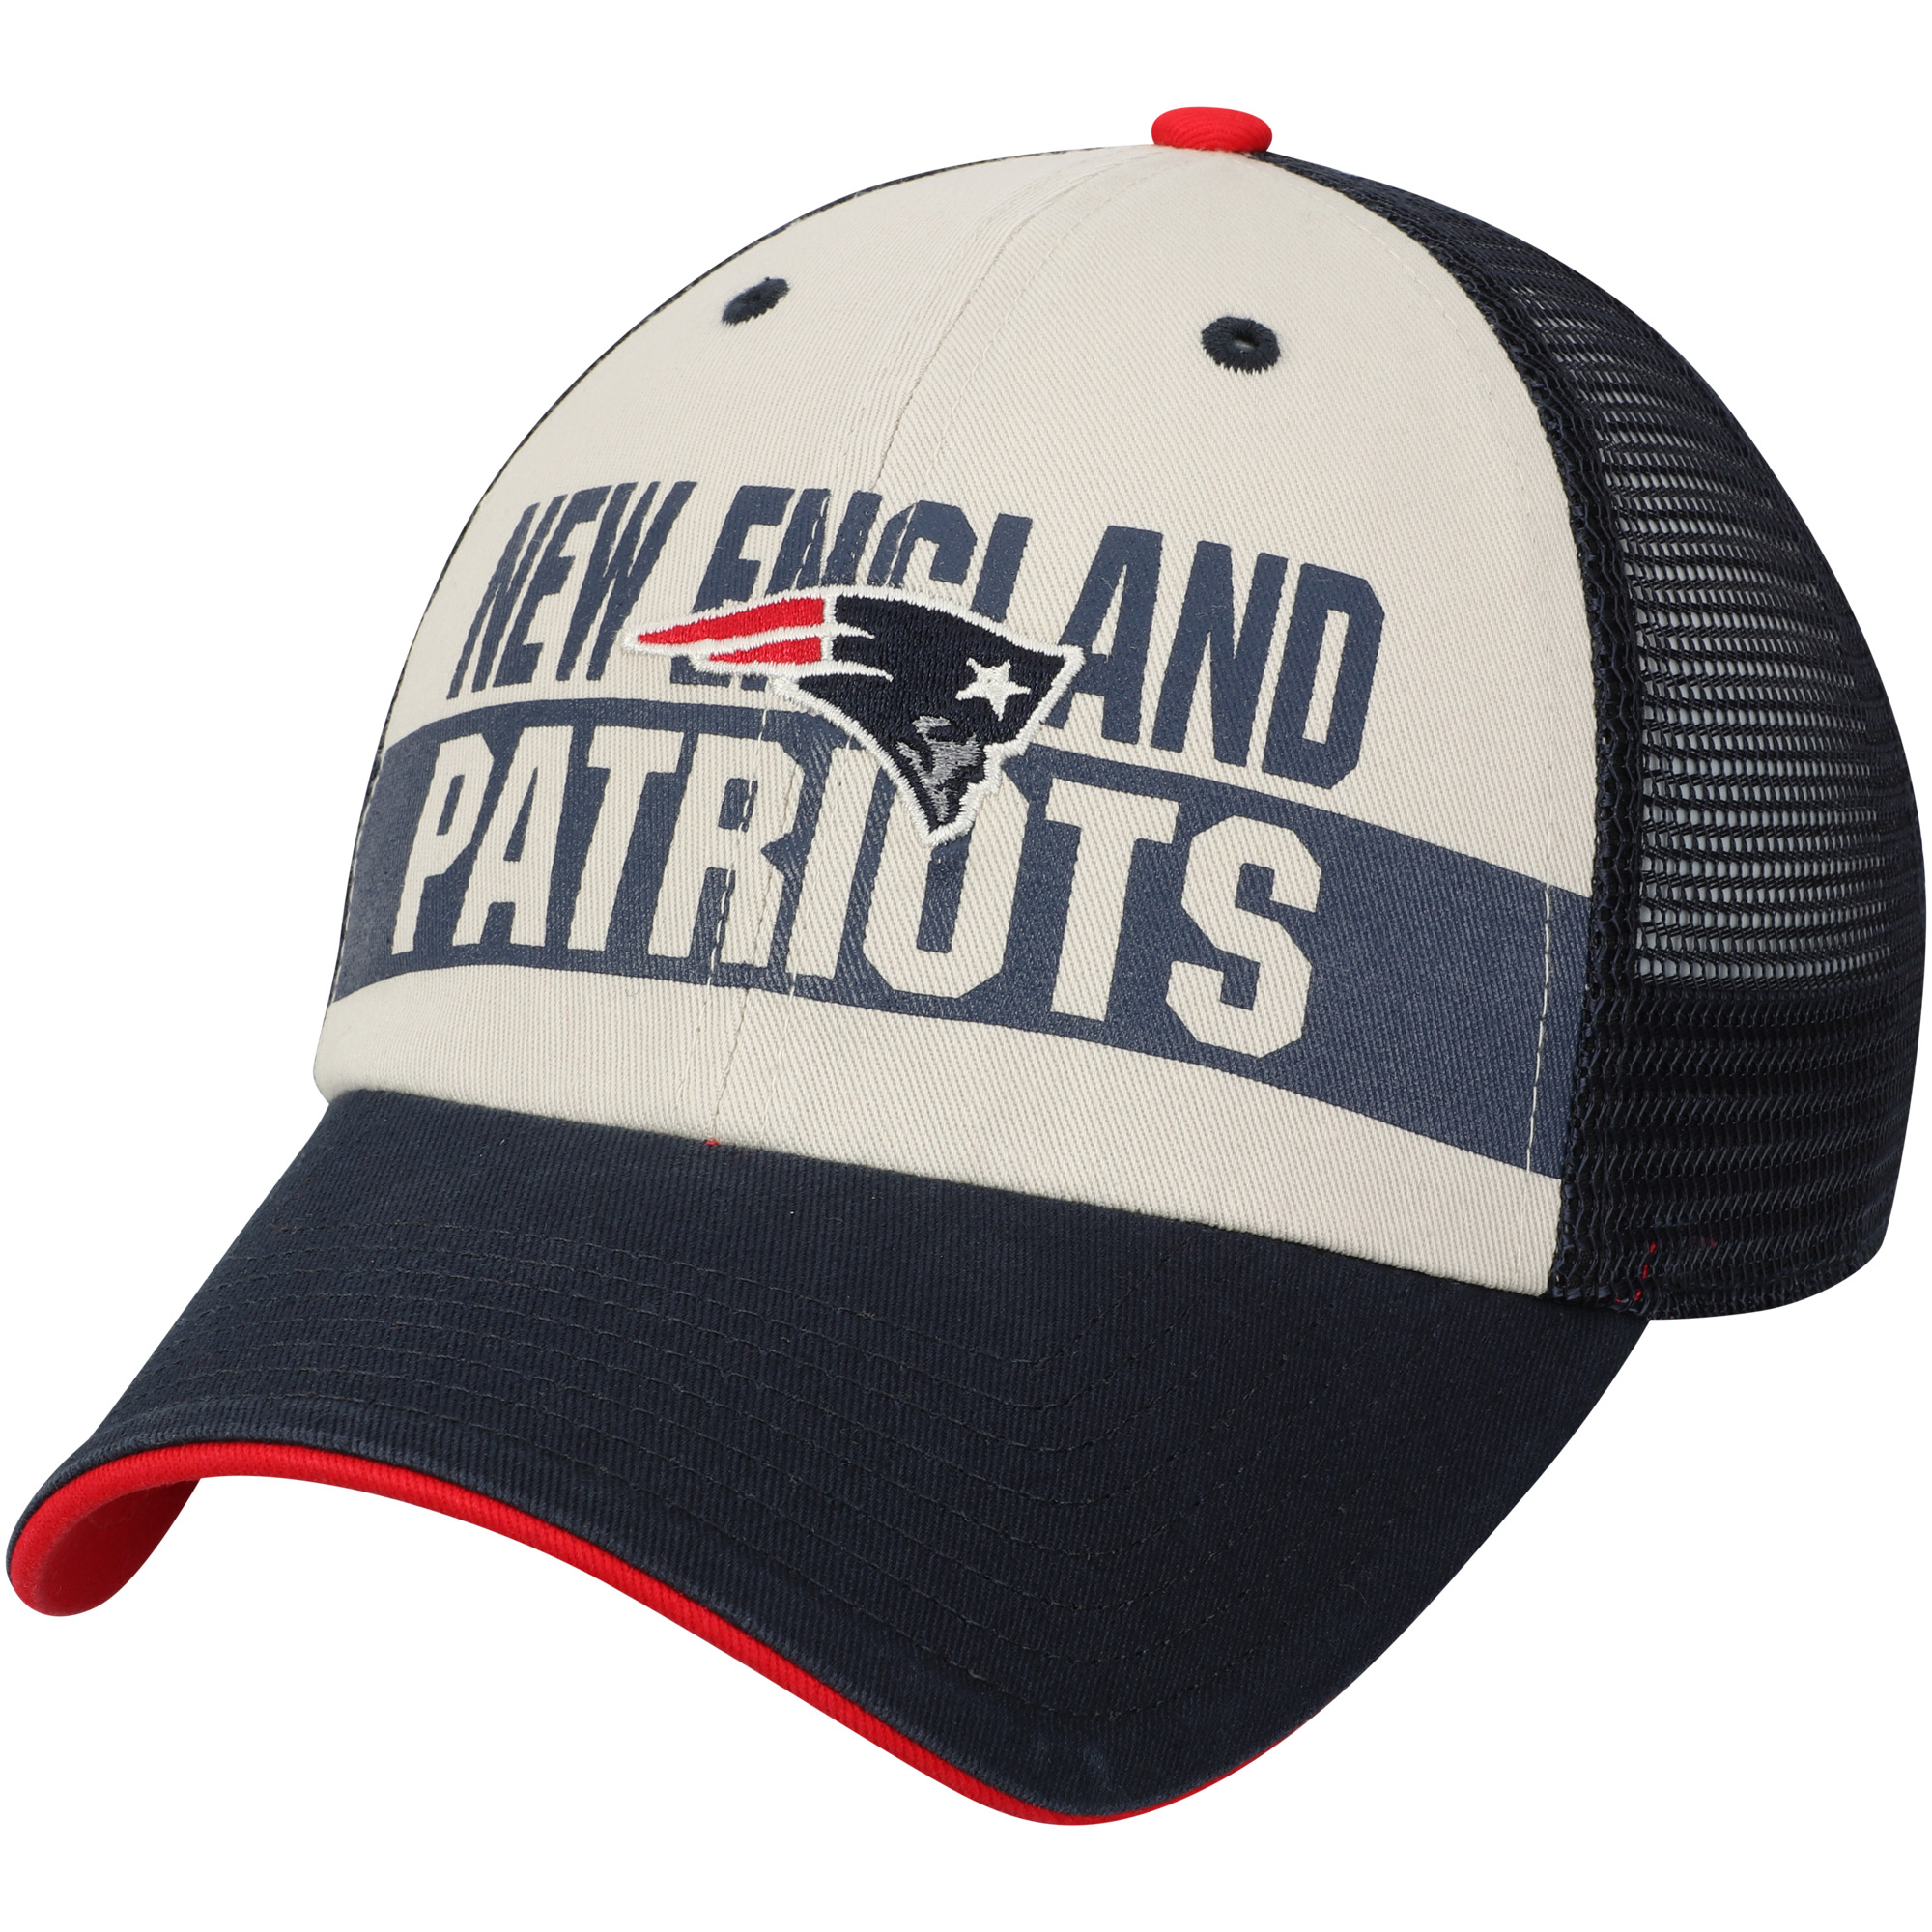 sale retailer 3329c d1e21 ... coupon mens fan favorite navy new england patriots glover snapback hat  osfa walmart ae392 85d67